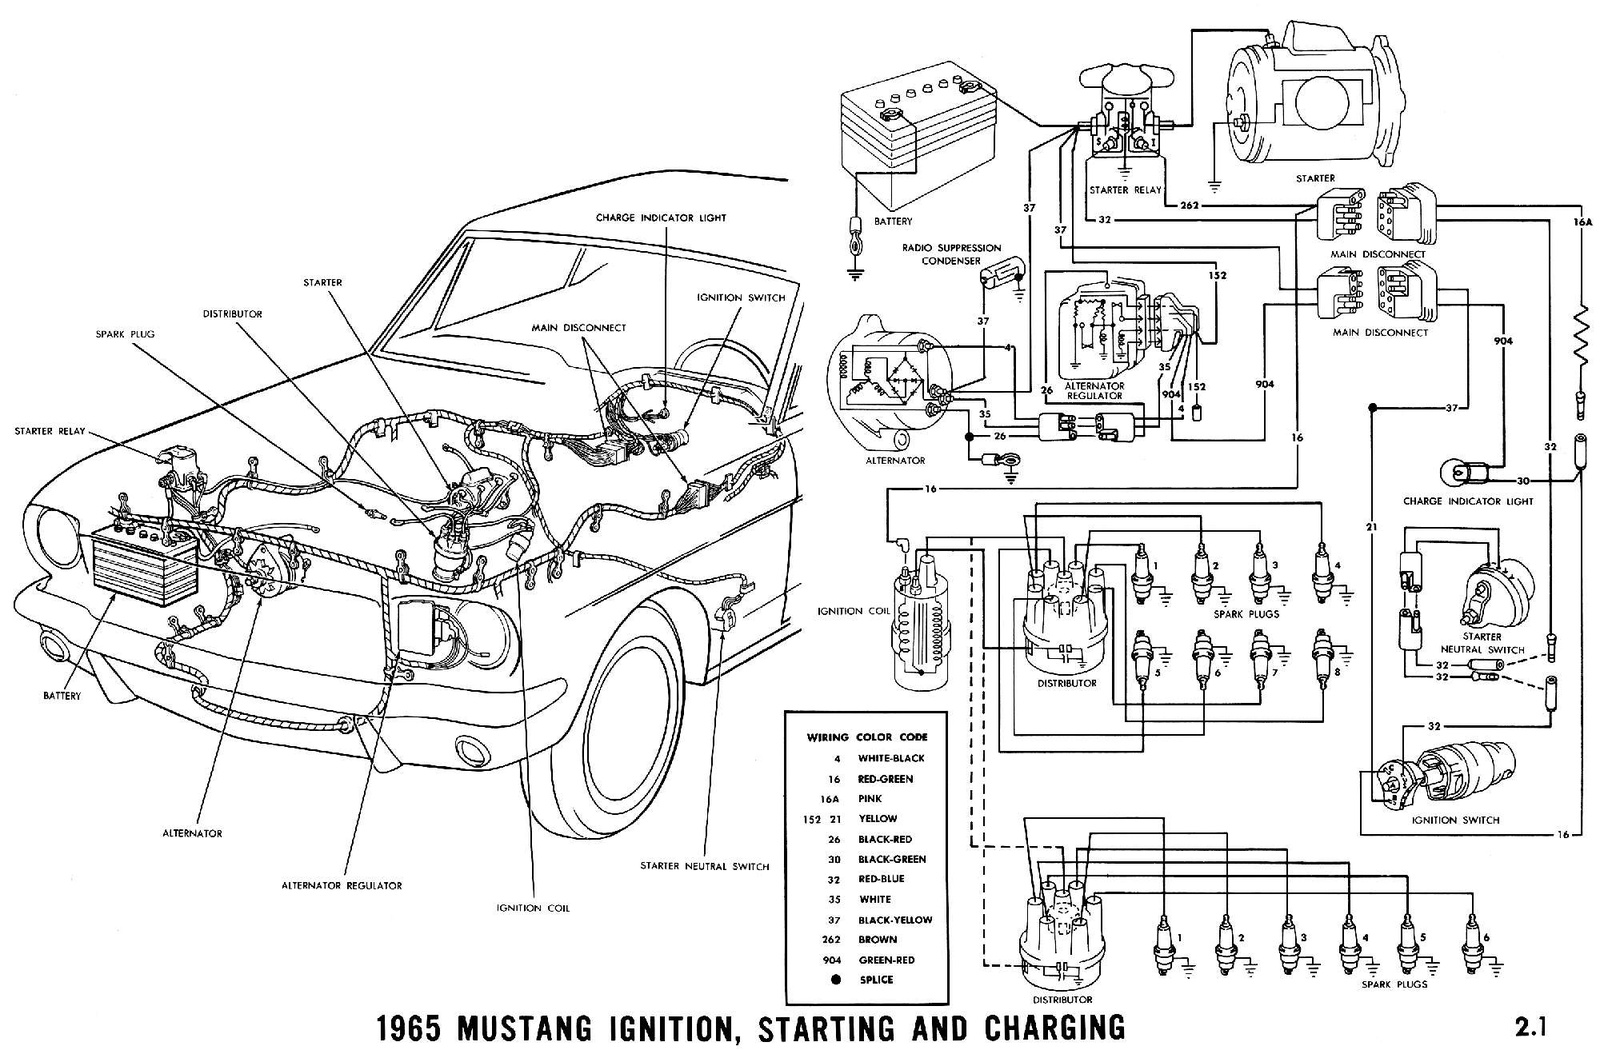 Astounding 65 Mustang Ignition Wiring Diagram Wiring Diagram Tutorial Wiring 101 Akebretraxxcnl